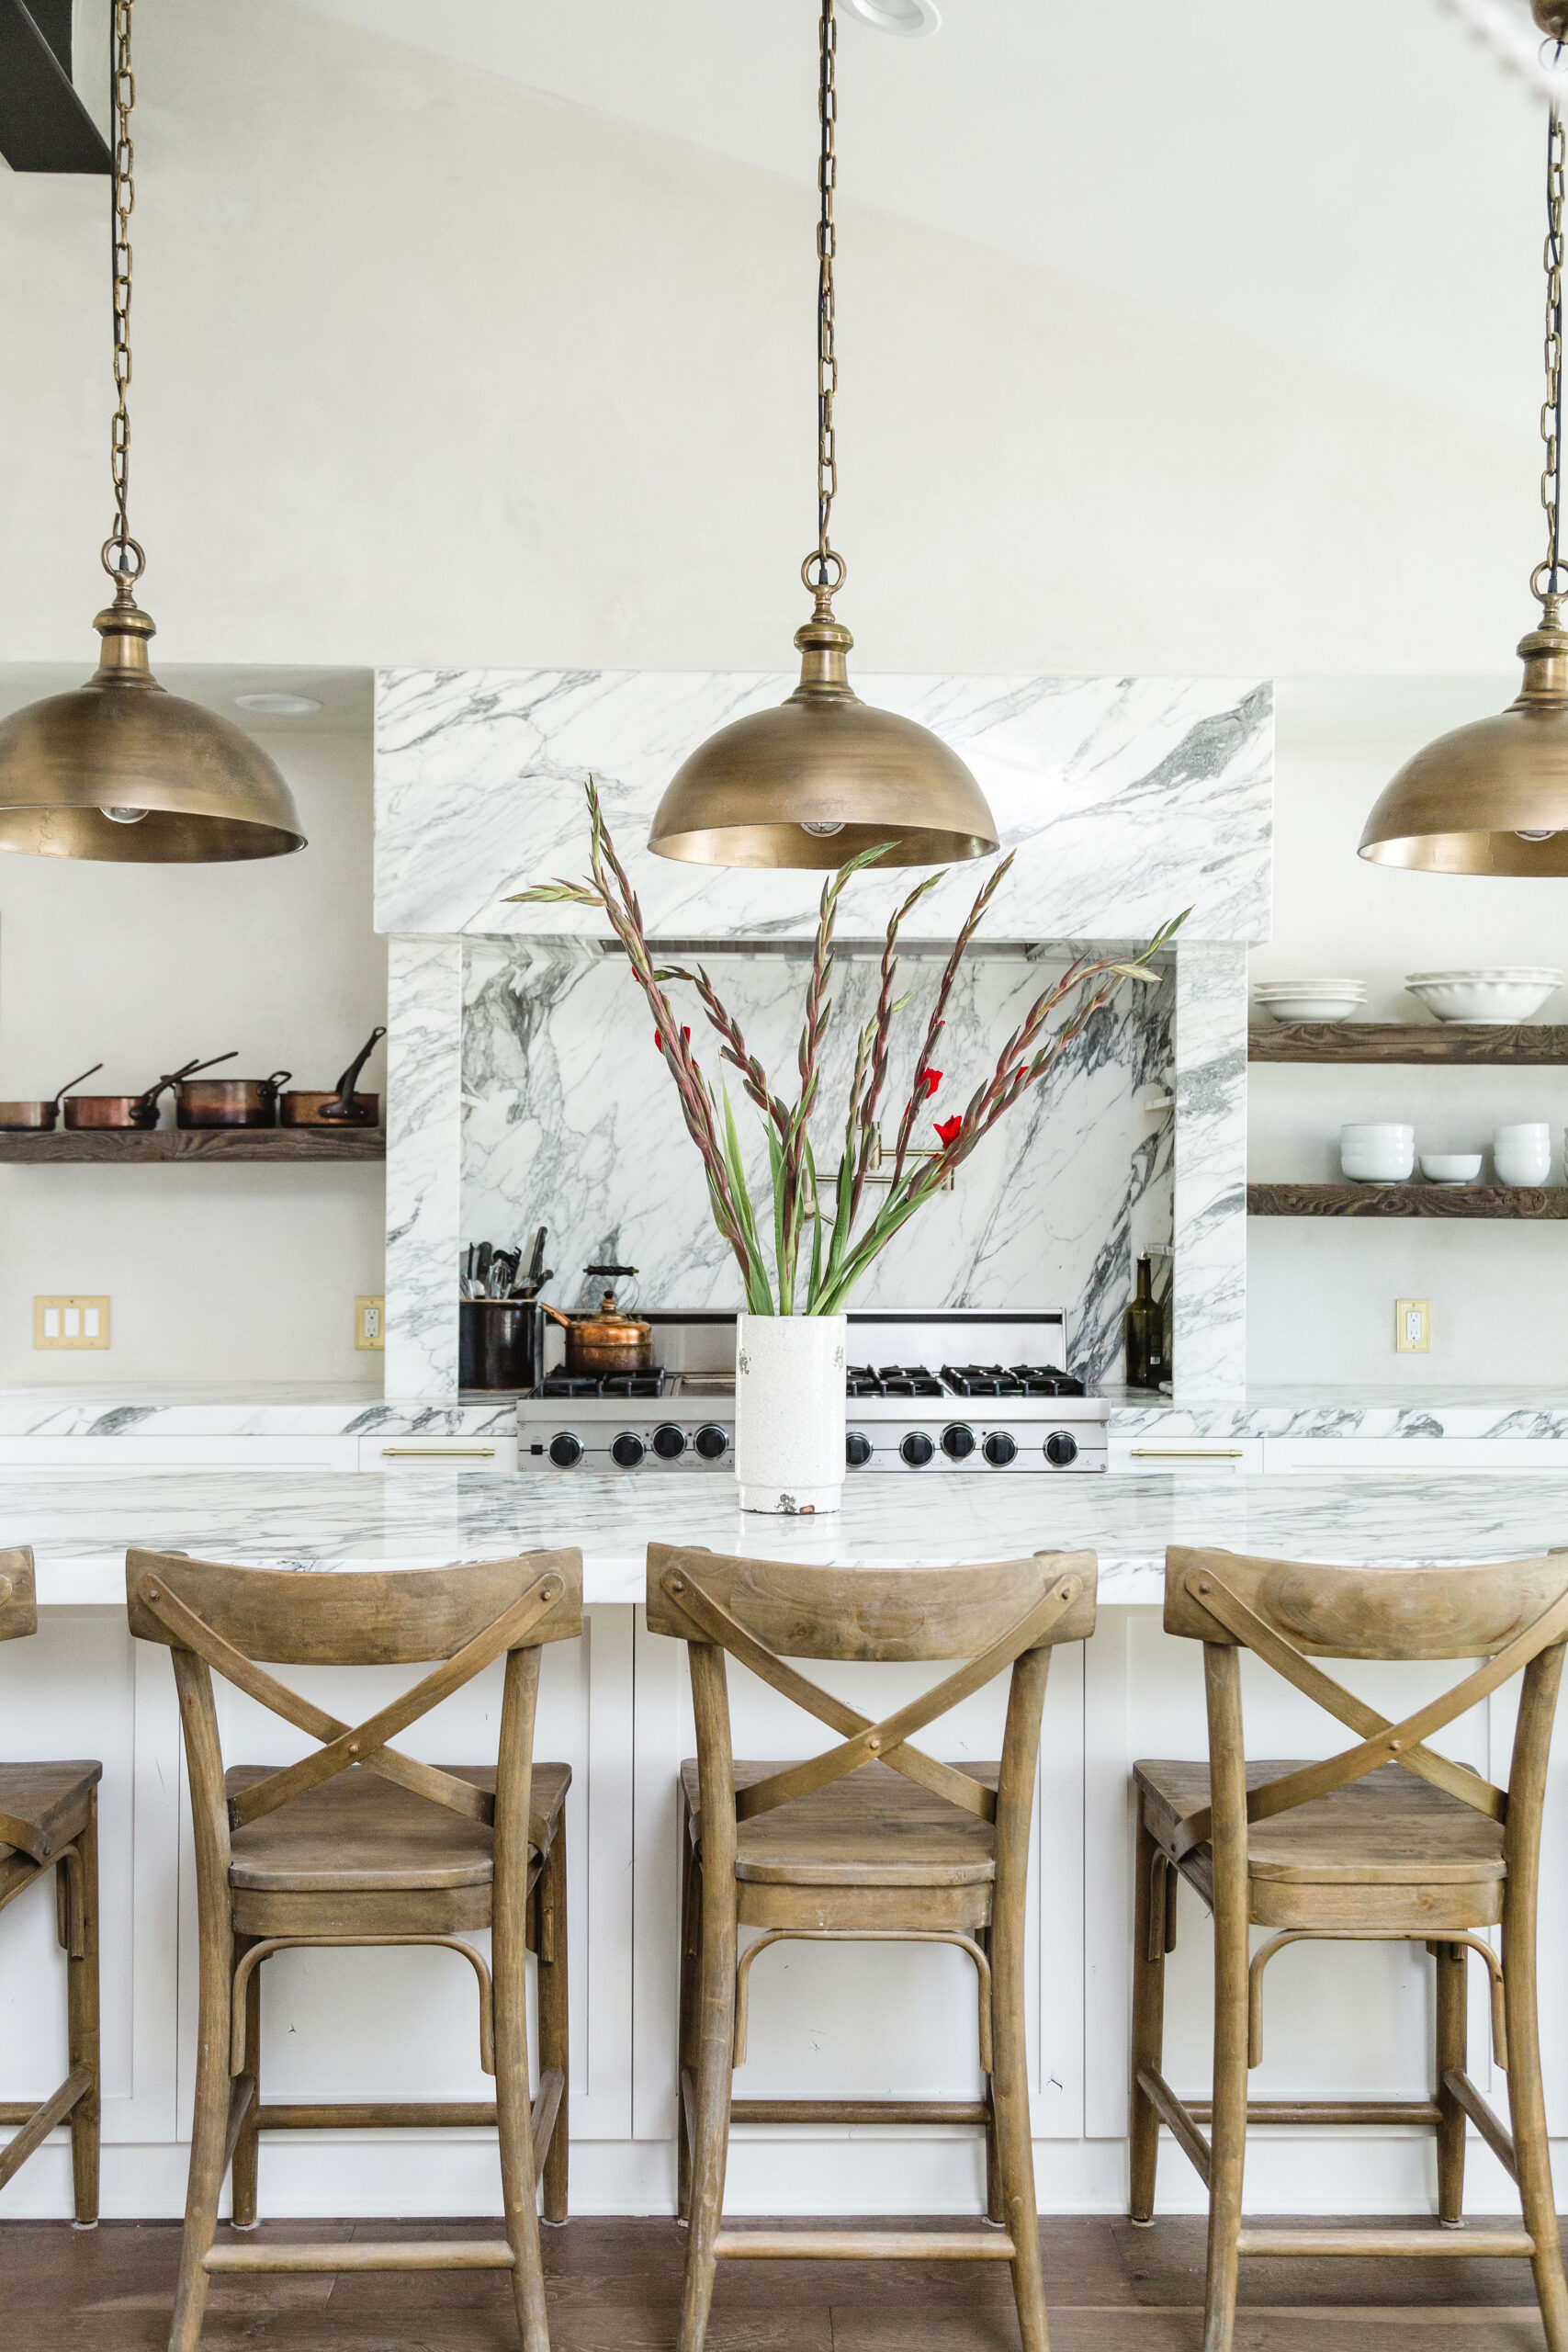 Stone kitchen trends we're predicting for the year ahead